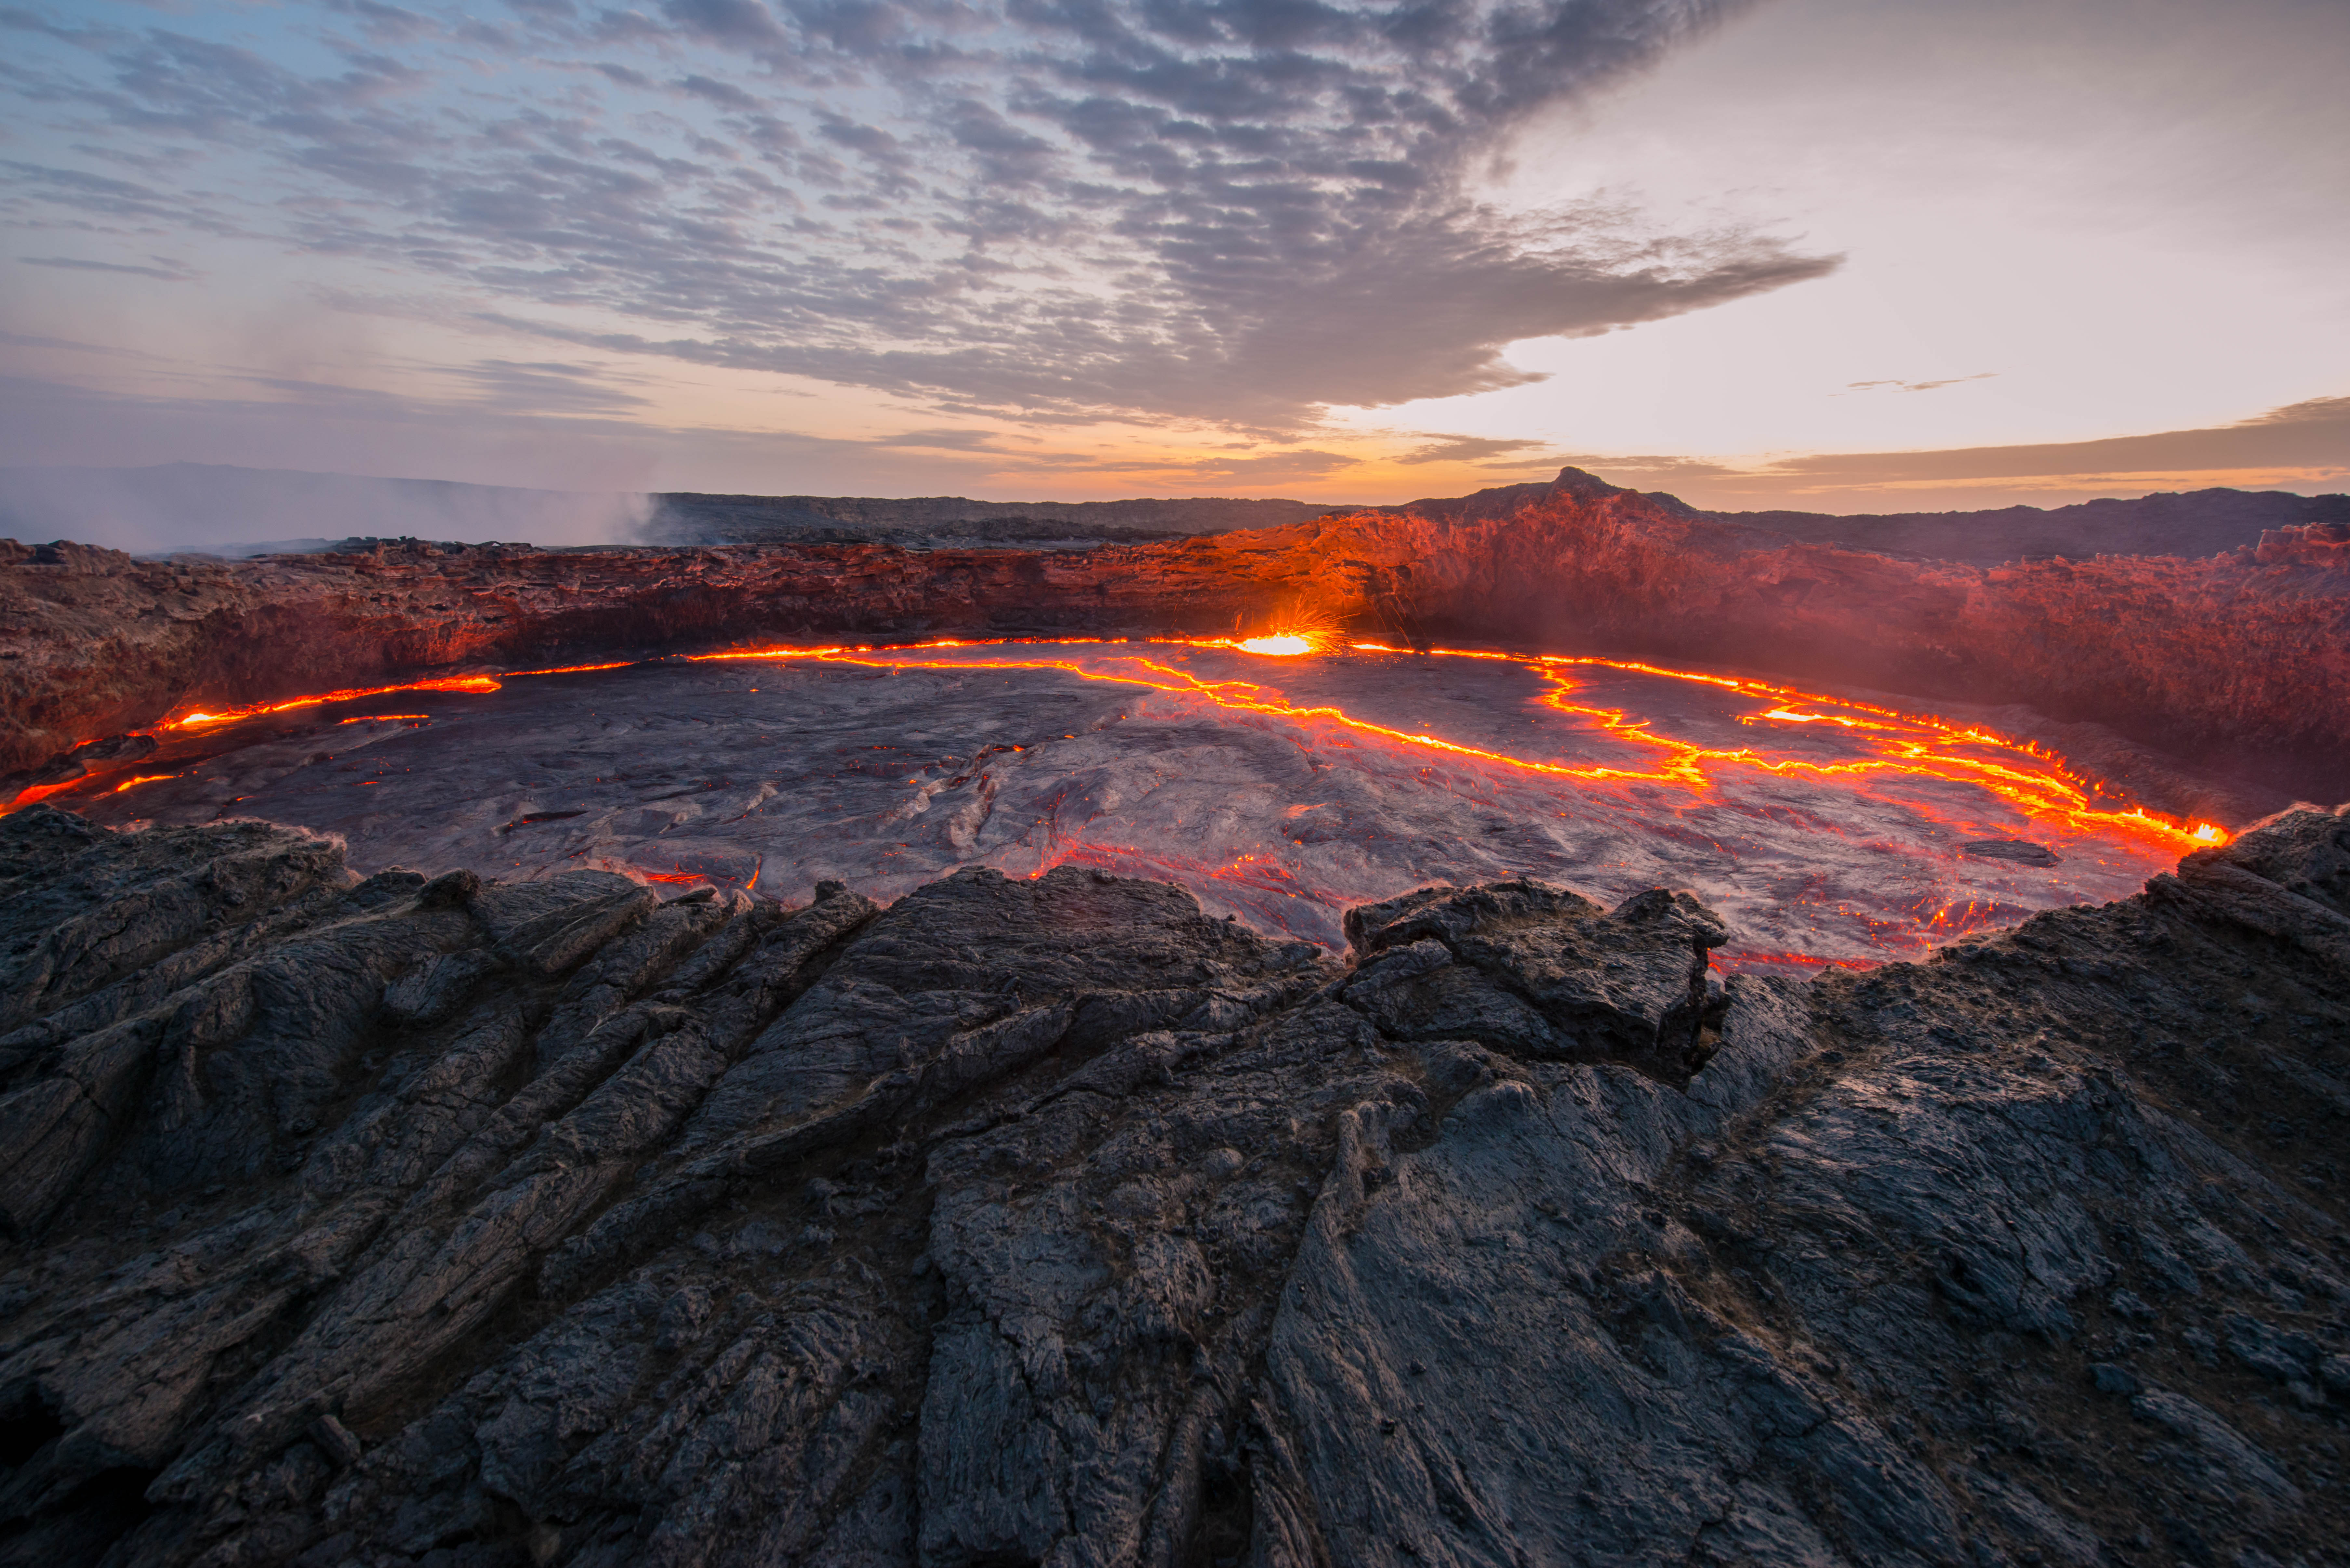 Ertale is the most active volcano of Eth